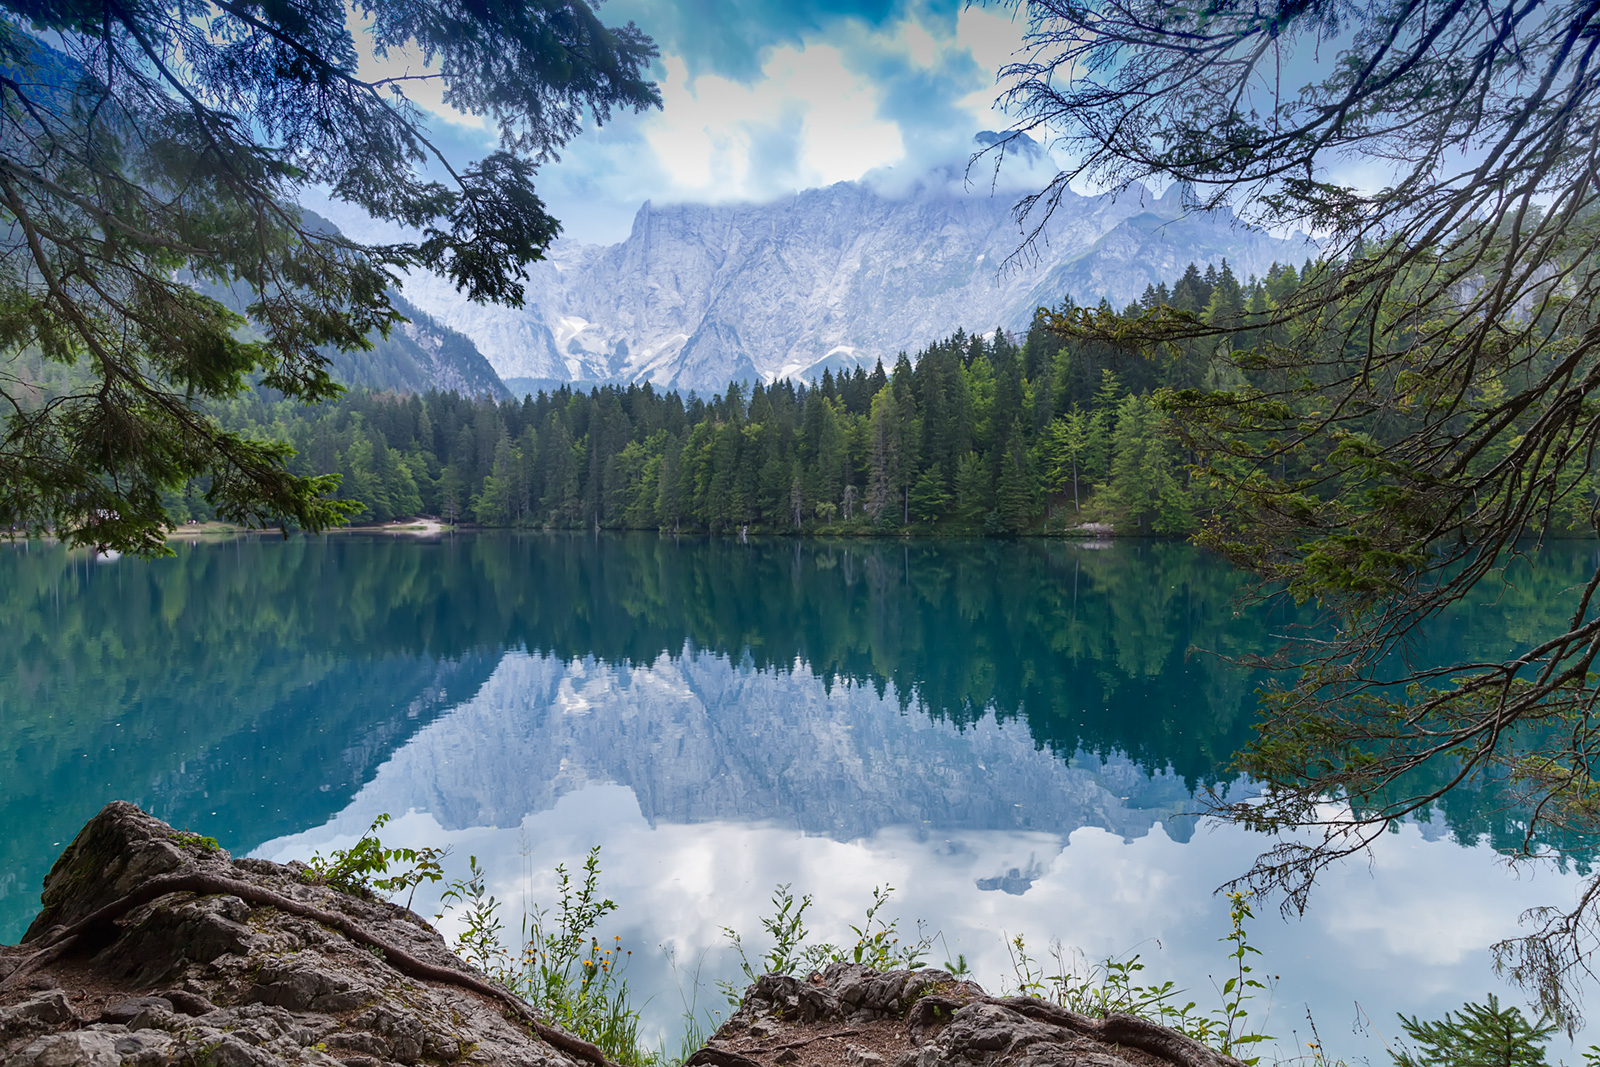 The lower Belopeško lake (Laghi di Fusine in italian) with magnificient Mangart mountain massif in the backdrop offers good opportunities for a snapshot.